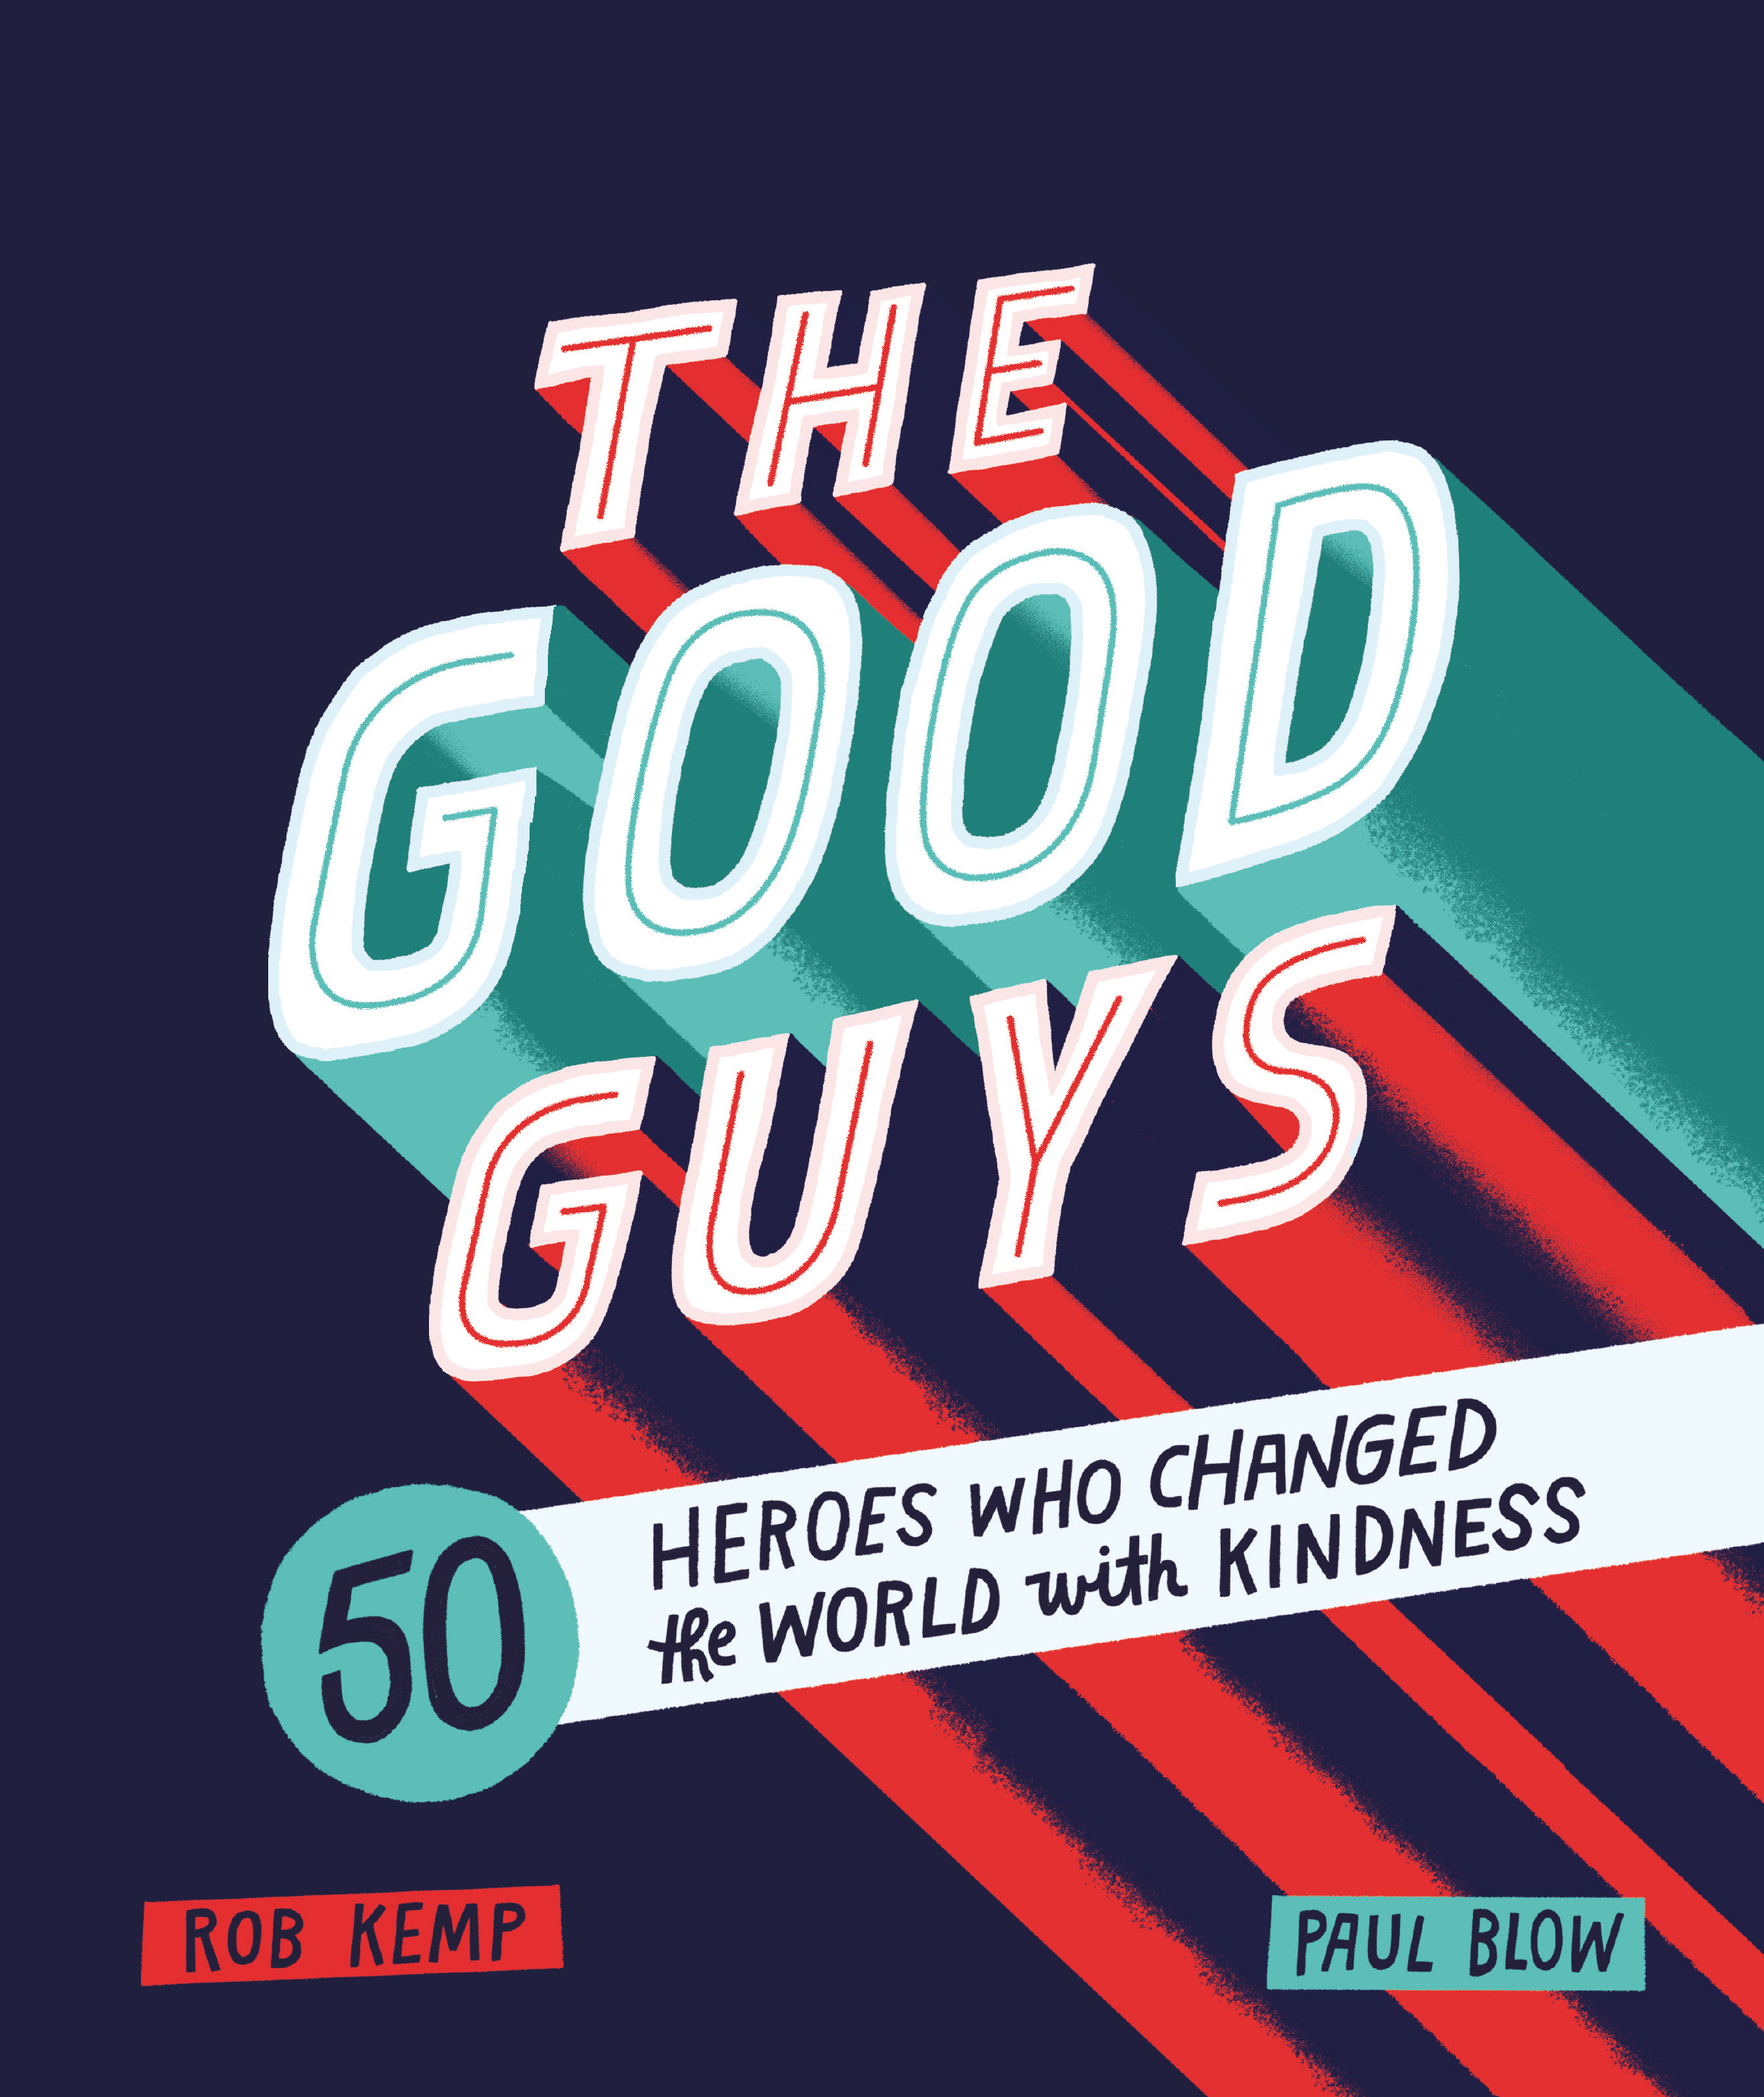 The Good Guys Heroes Who Changed The World With Kindness By Paul - The good guys